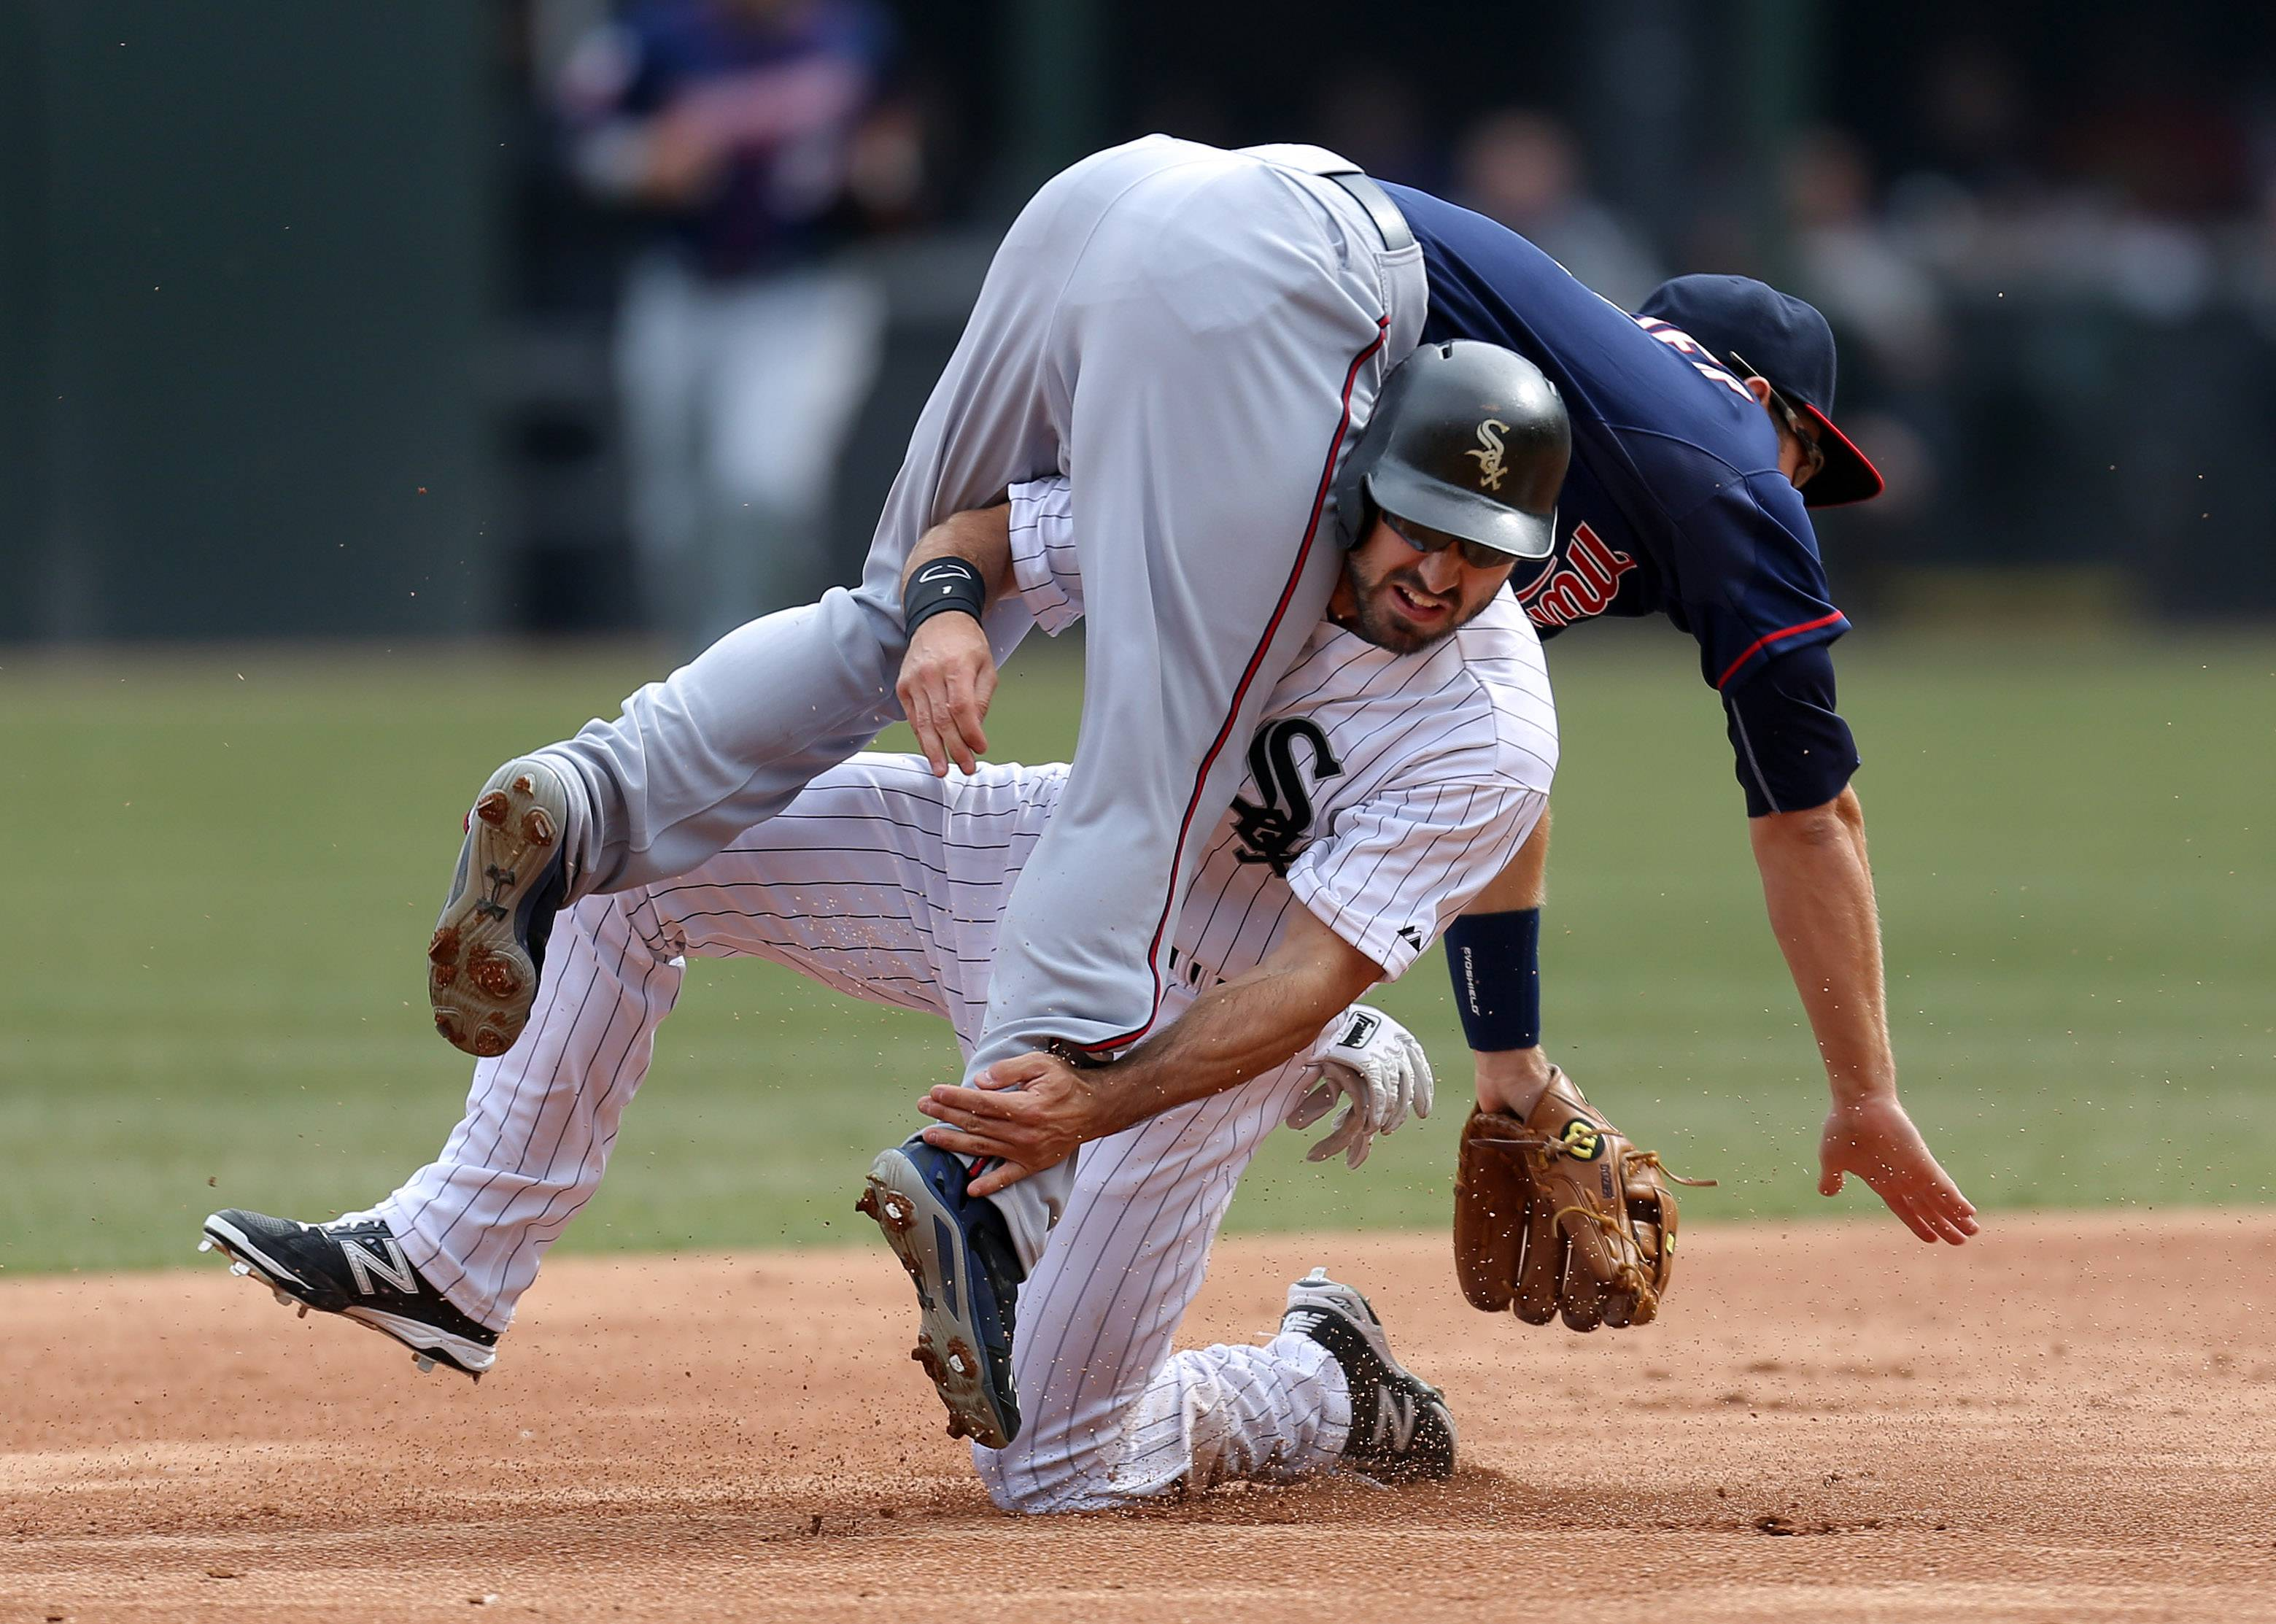 White Sox left fielder Adam Eaton gets tangled up with Minnesota Twins second baseman Brian Dozier during Monday's home opener at U.S. Cellular Field.